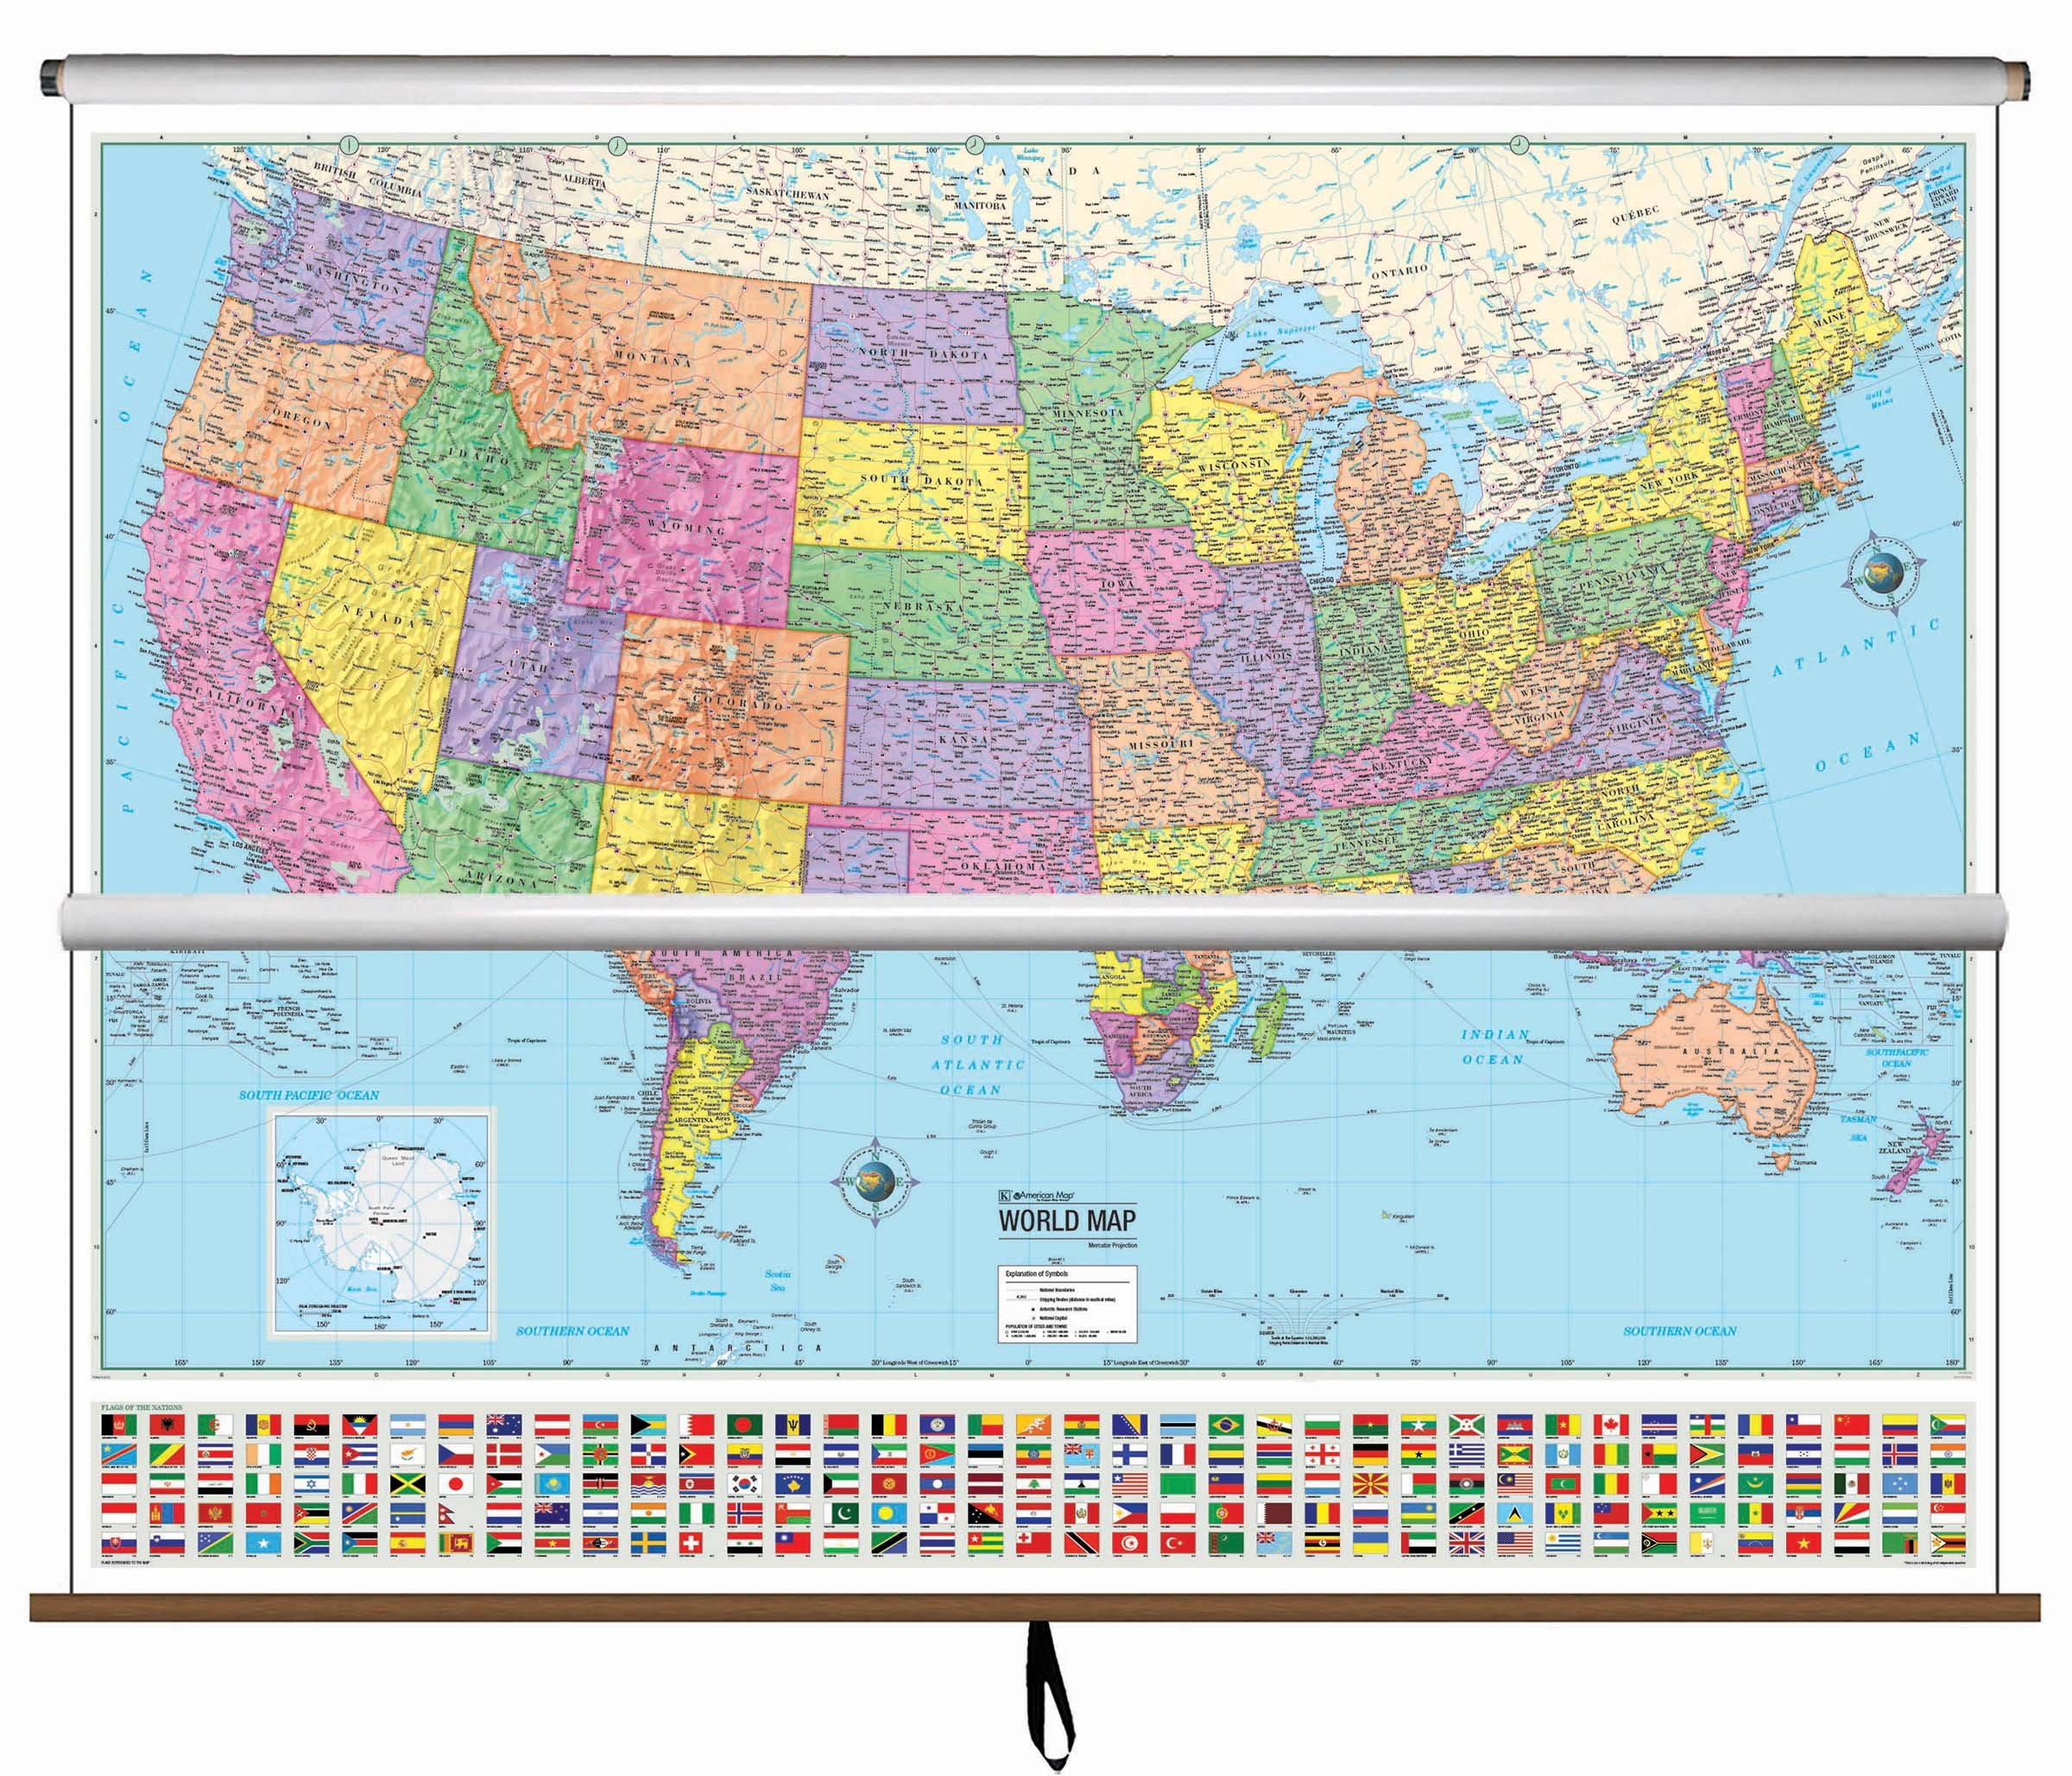 US/World Advanced Political Classroom Combo Wall Map on Roller by Kappa Map